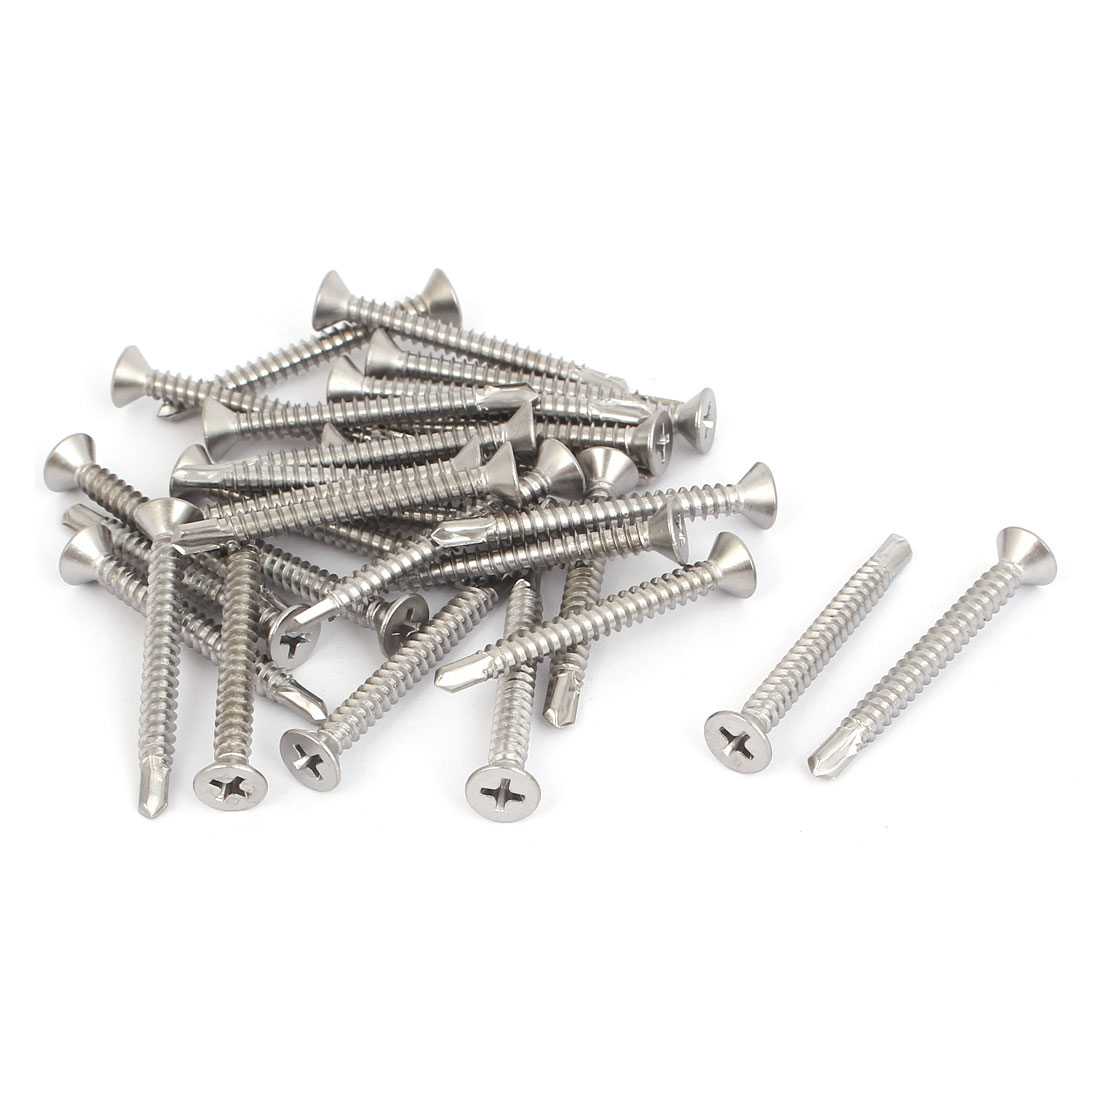 M4.8 x 45mm Phillips Countersunk Head Self Drilling Screws Bolts 30 Pcs